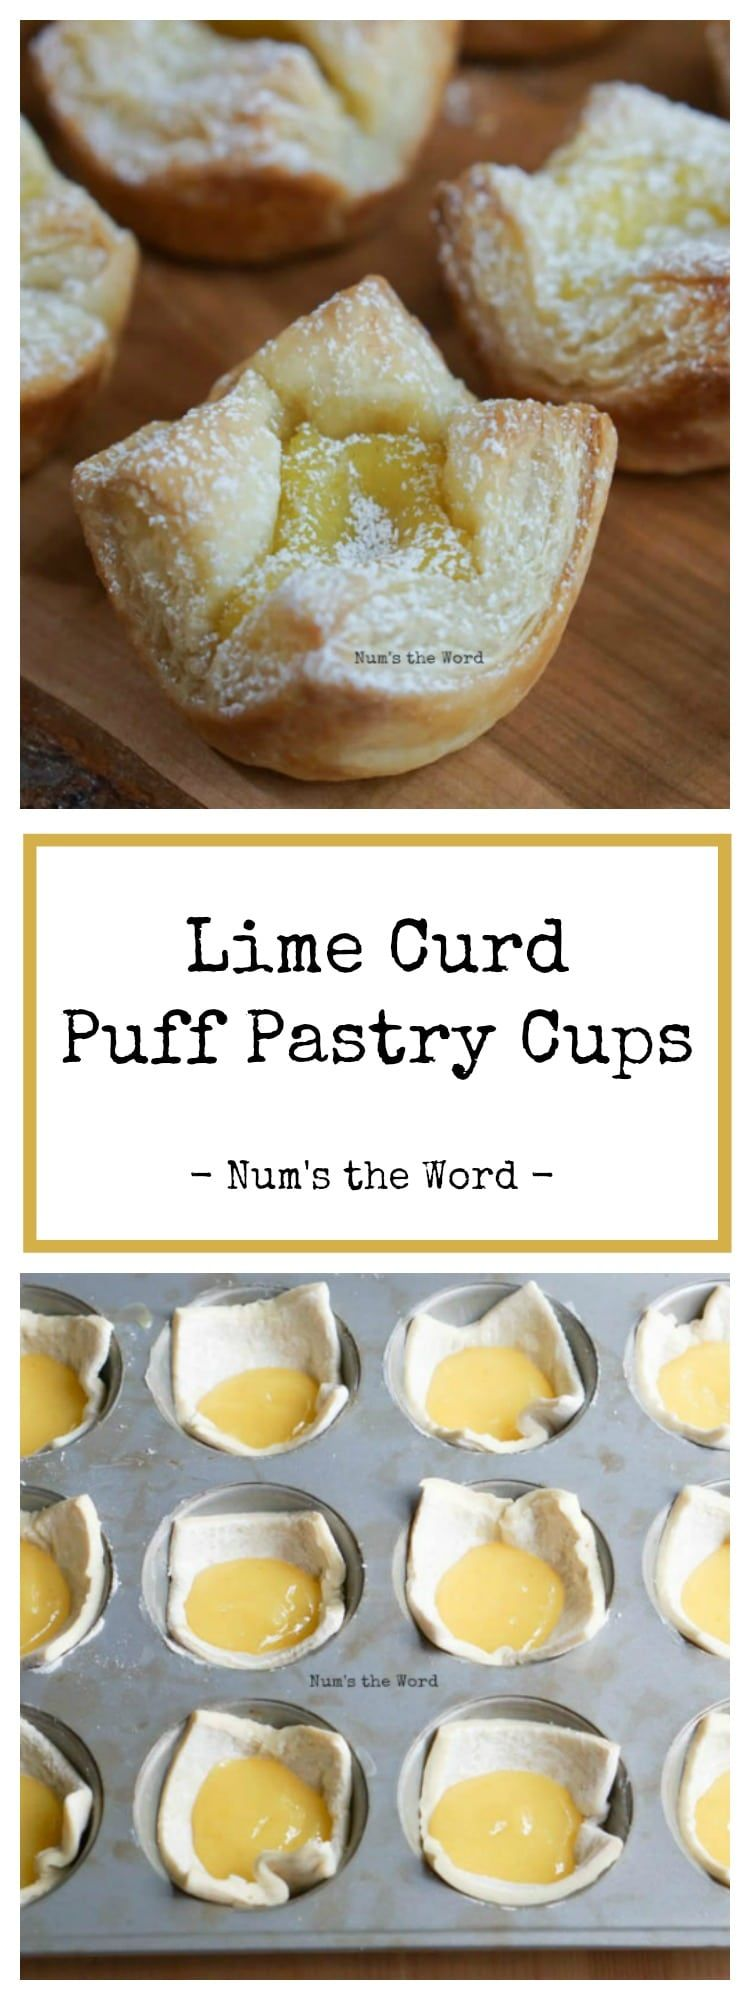 These Lime Curd Puff Pastry Cups are packed with flavor and are so easy to create! Any curd can be used to whip these up. Lemon curd, lime curd or any other fruit curd would work well! This quick and easy treat is one you can make ahead of time and enjoy later! #dessert #puffpastry #limecurd #curd #lemoncurd #quick #easy #3ingredient #powderedsugar #makeahead #appetizer #gourmet #everyday #fruit #fruitcups #recipe #numstheword #recipeforpuffpastry